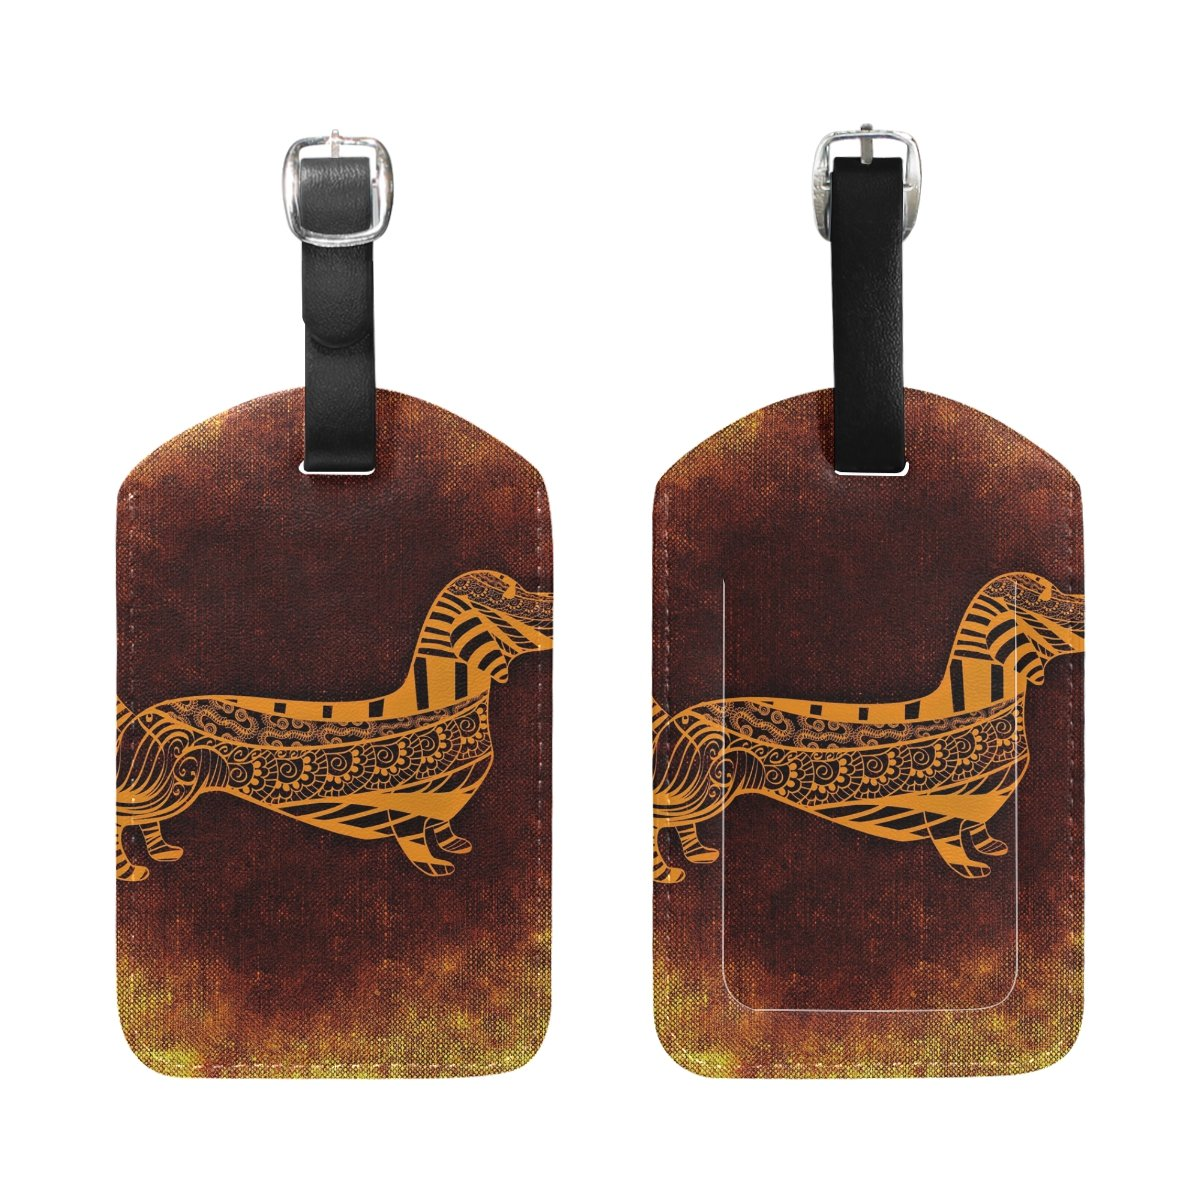 Aumimi Cool Dog Travel Luggage Tags Airlines Baggage Labels 2pcs